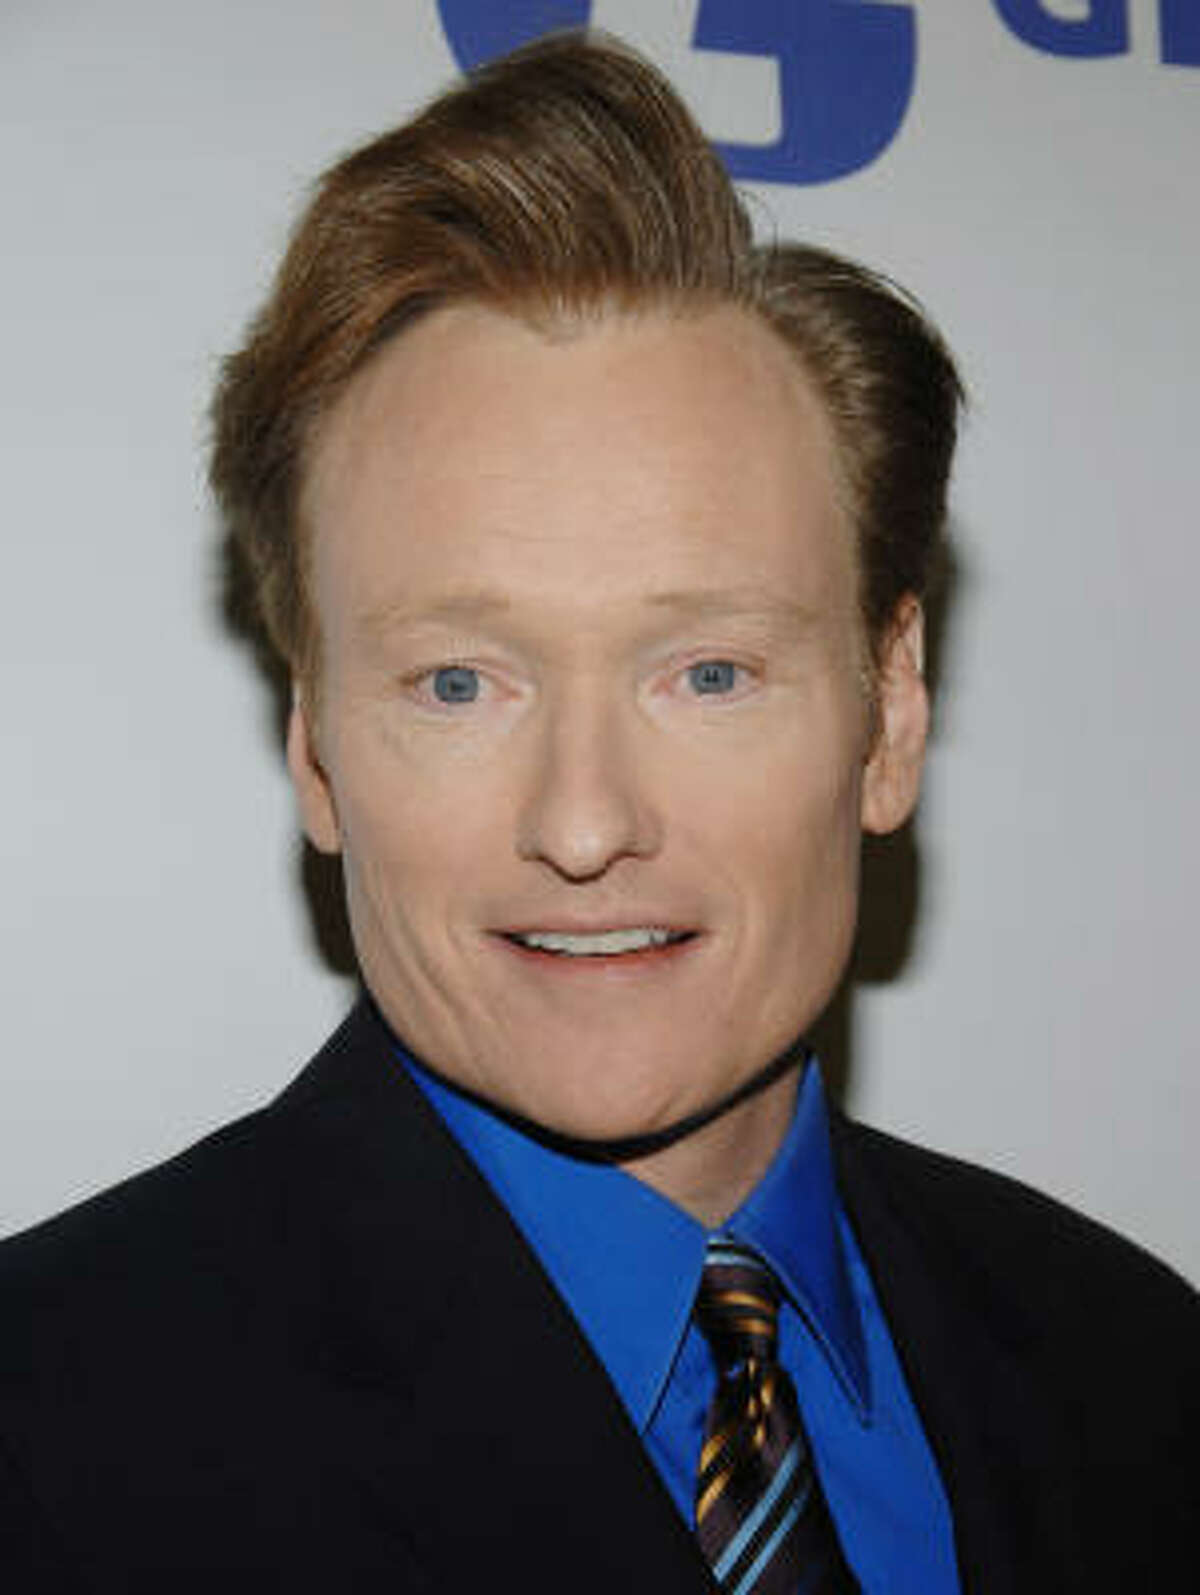 Conan O'Brien has a two-year contract with NBC said to be valued at about $28 million per year.